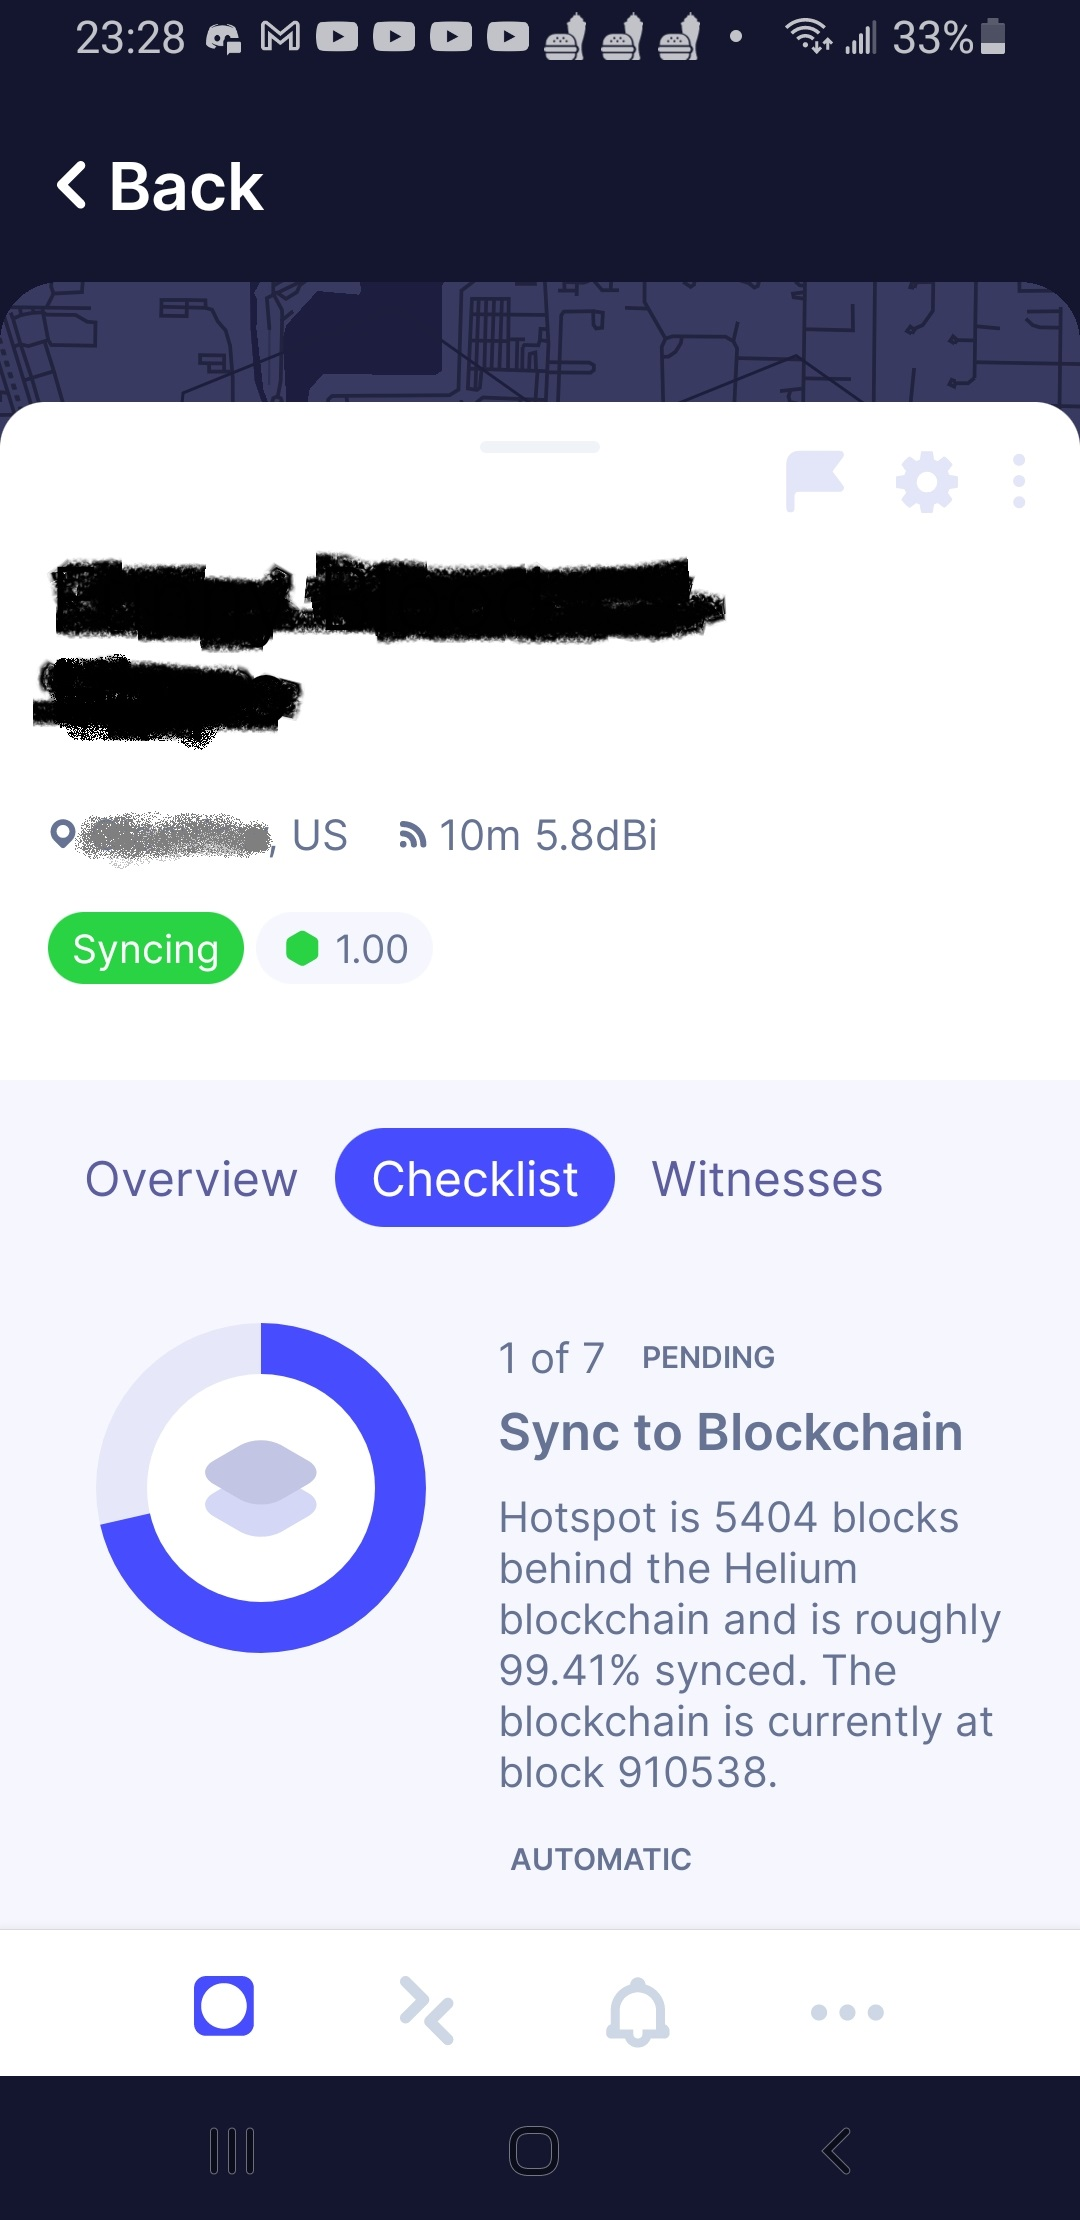 Hotspot is 5403 blocks behind the Helium blockchain and is roughly 99.41% synced. The blockchain is currently at block 910538